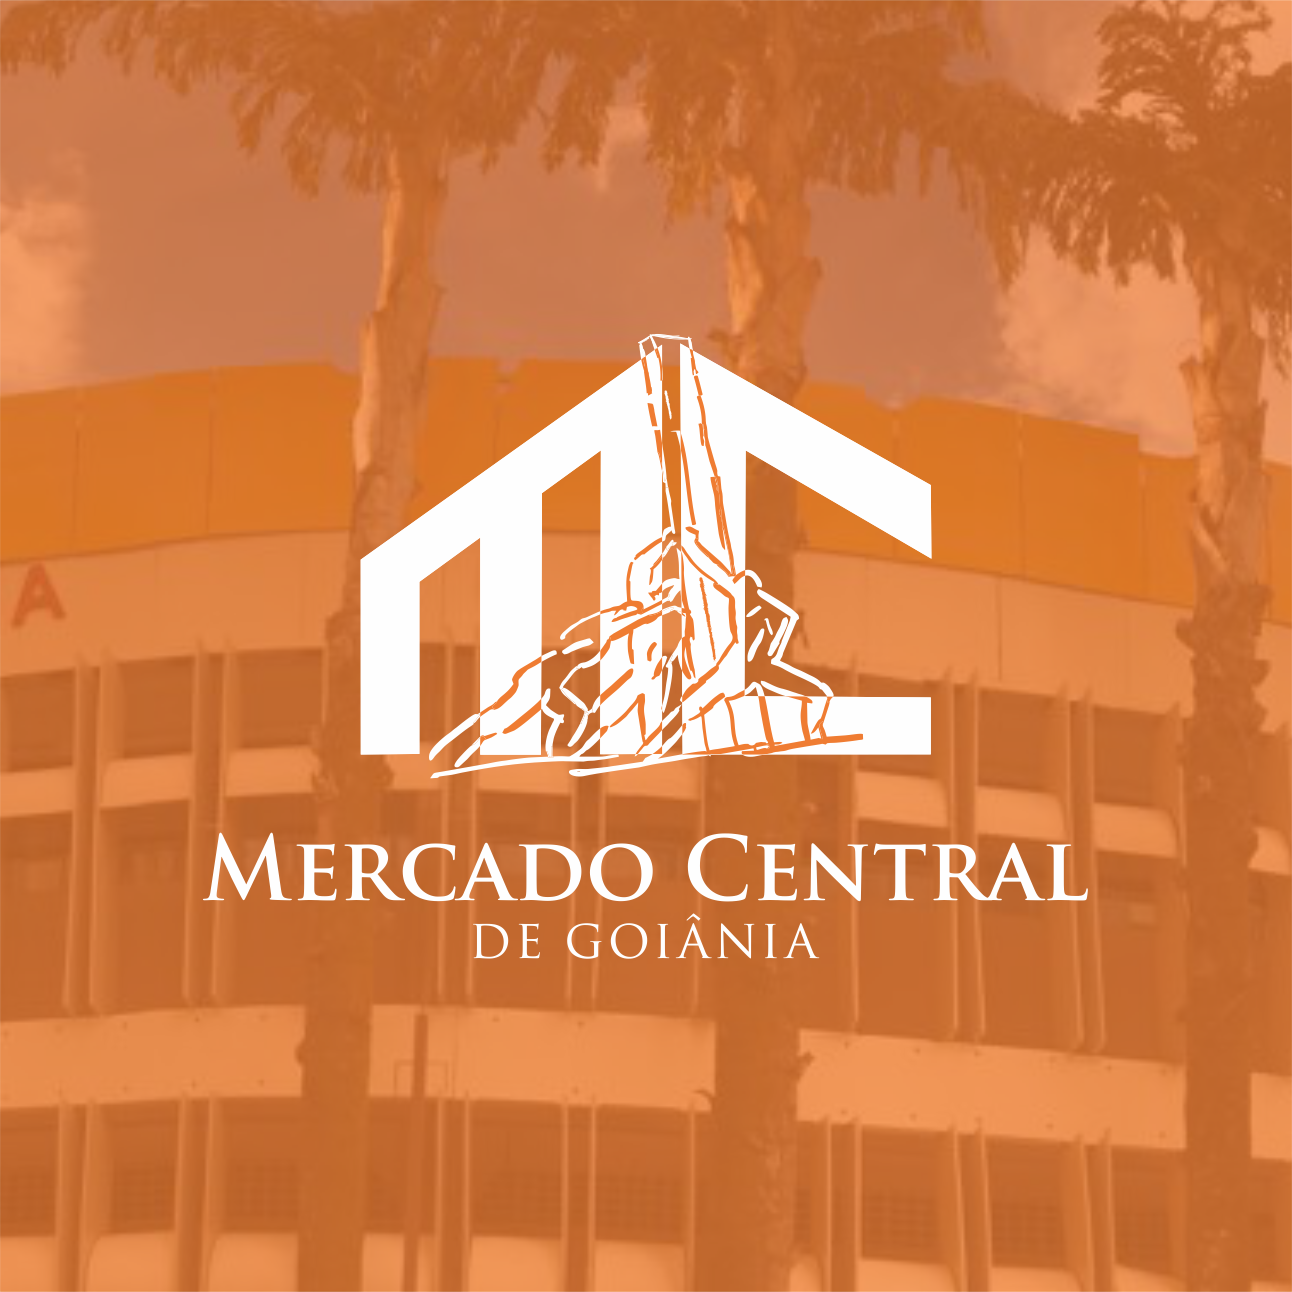 Mercado Central de Goiânia